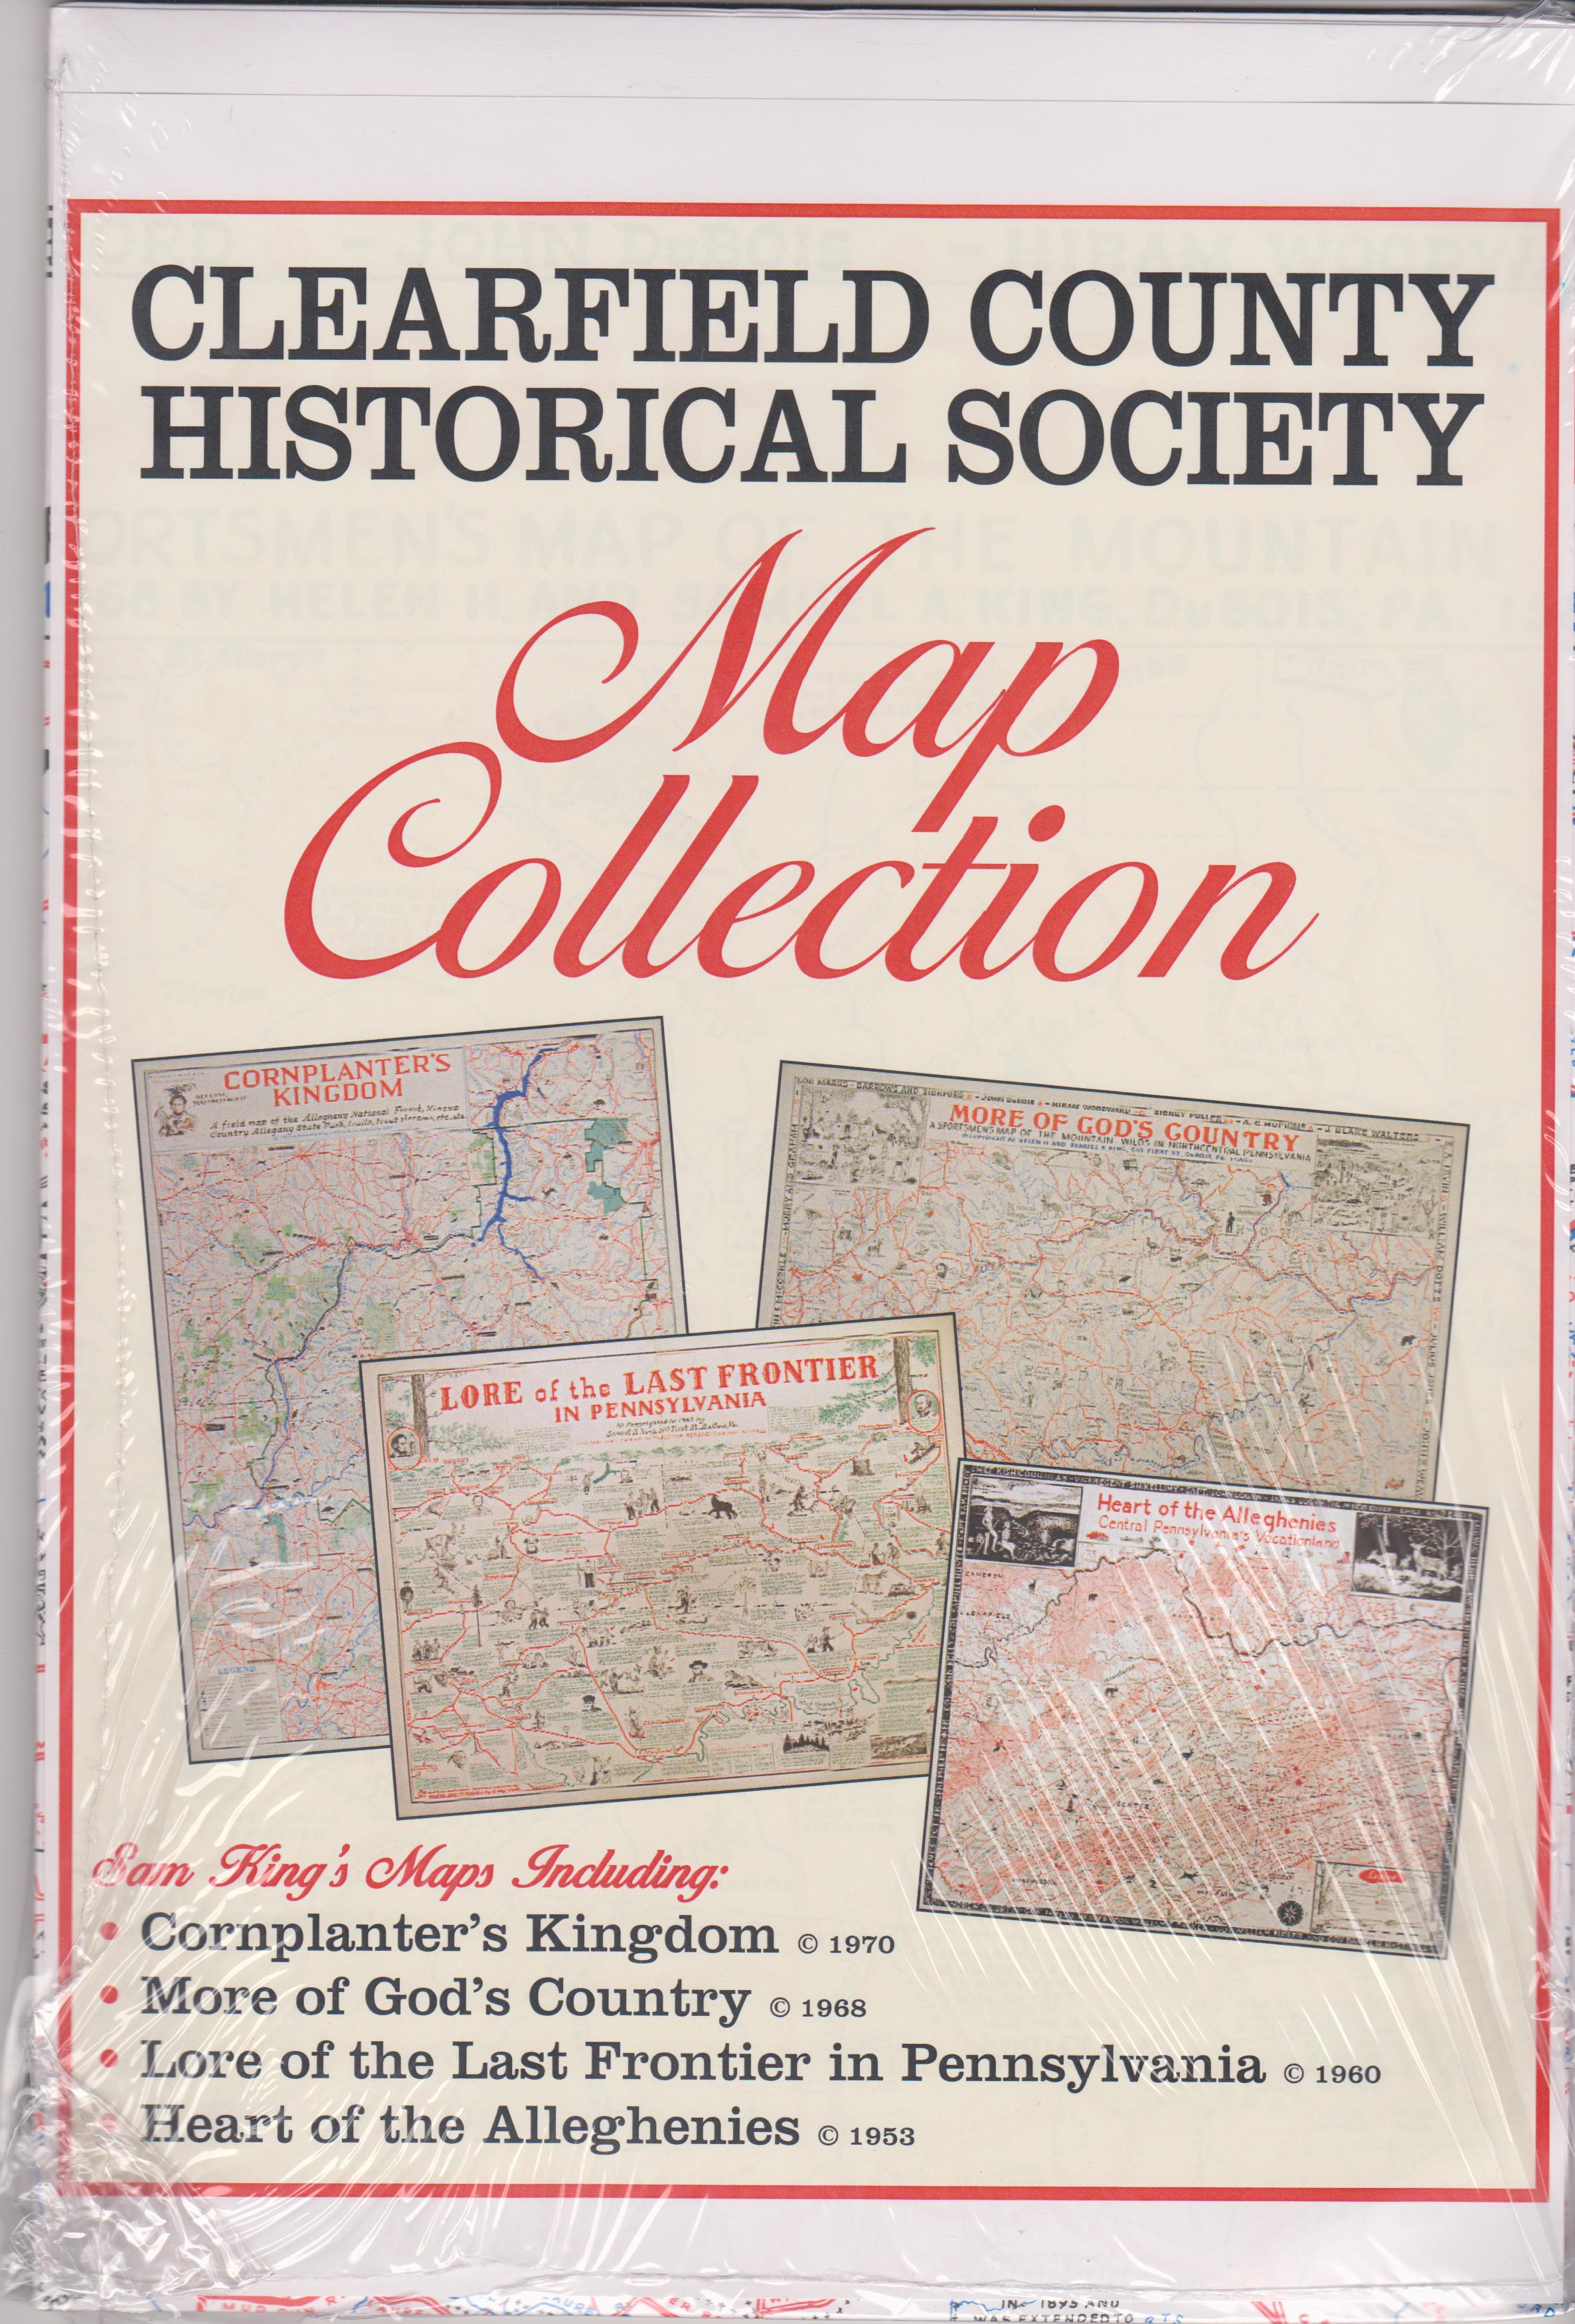 Buy all 7 Sam King's Maps for $30.00 - SAVE $5.00.